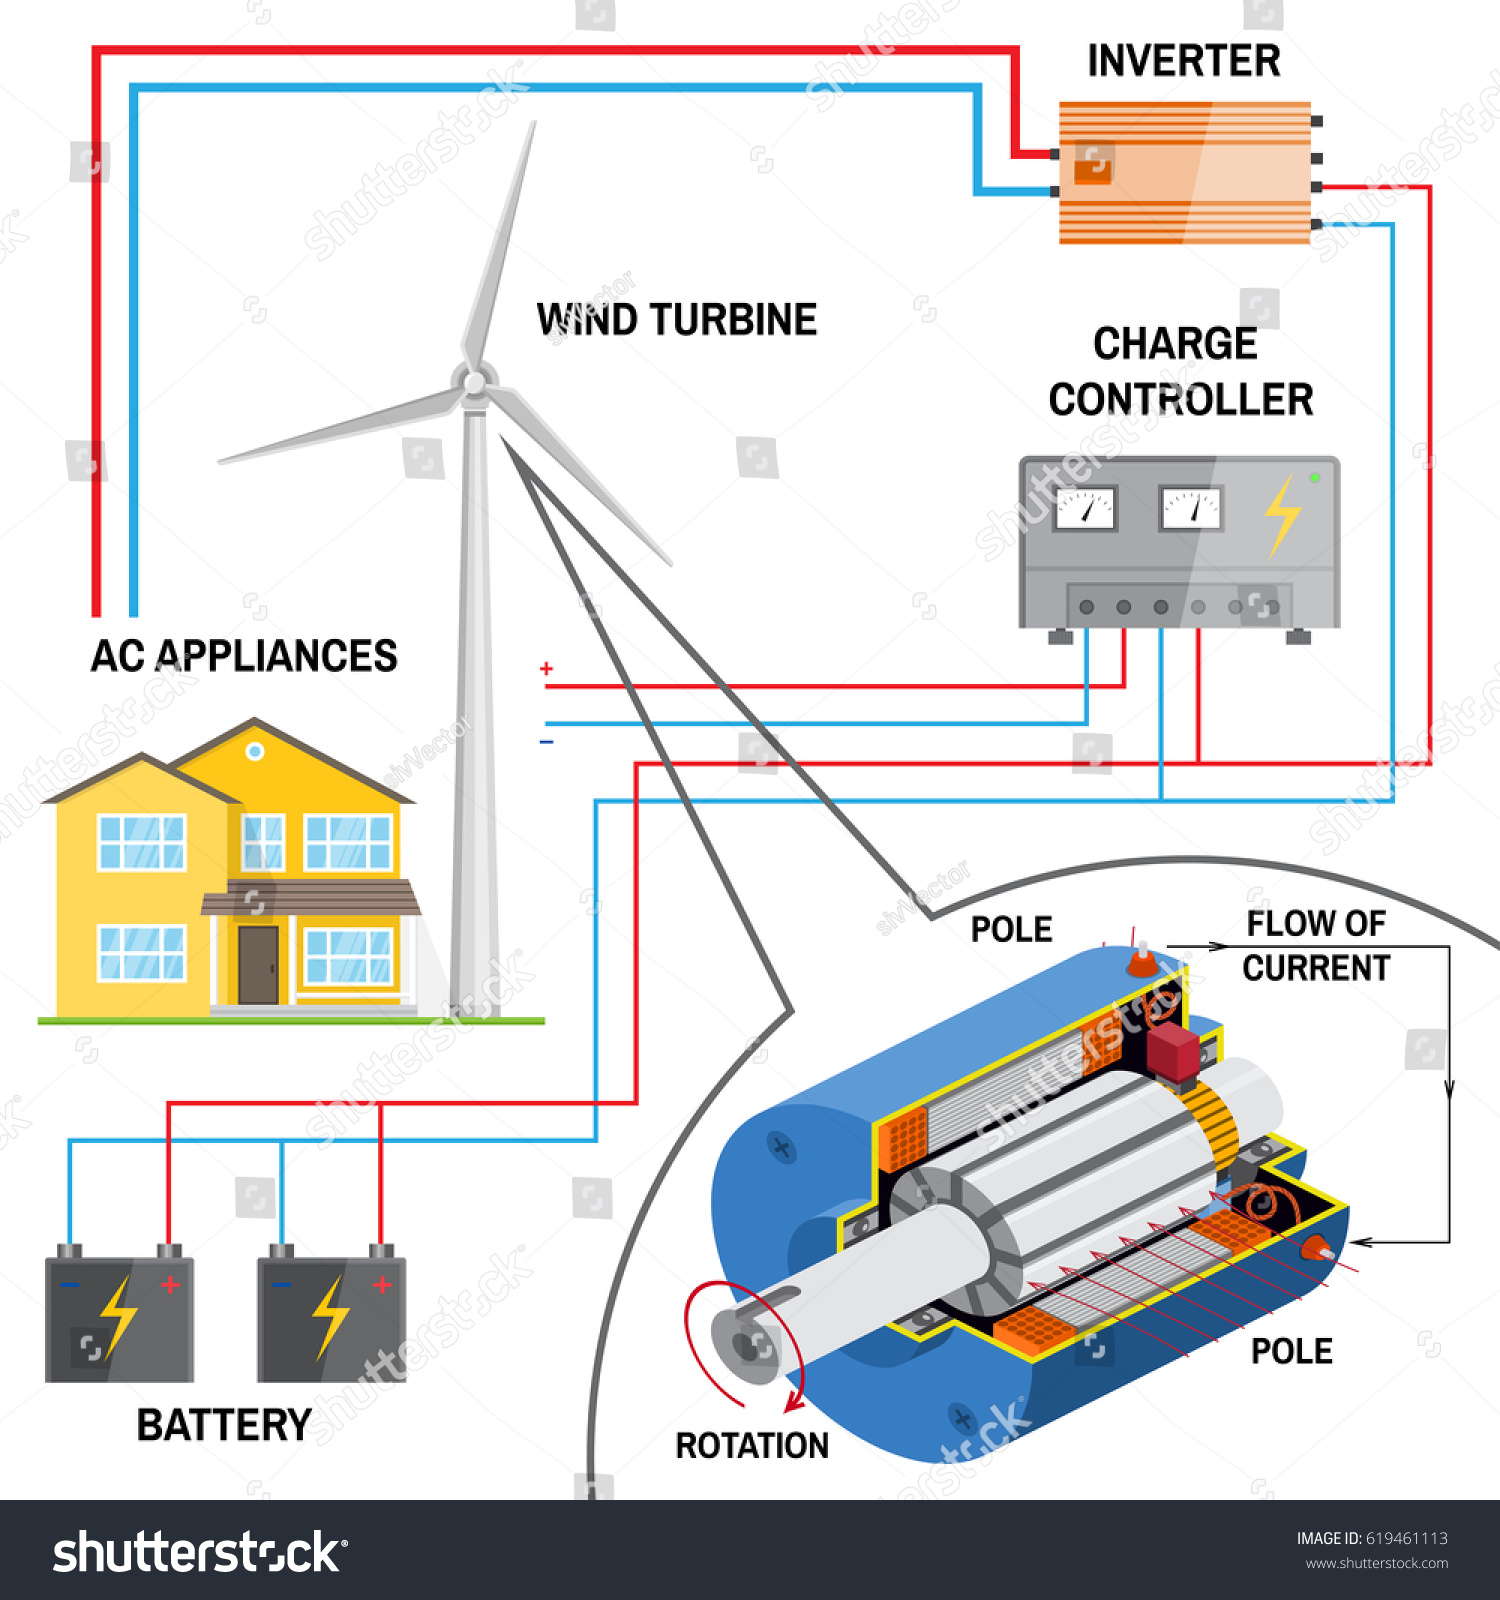 Wind Turbine System Home Renewable Energy Stock Illustration